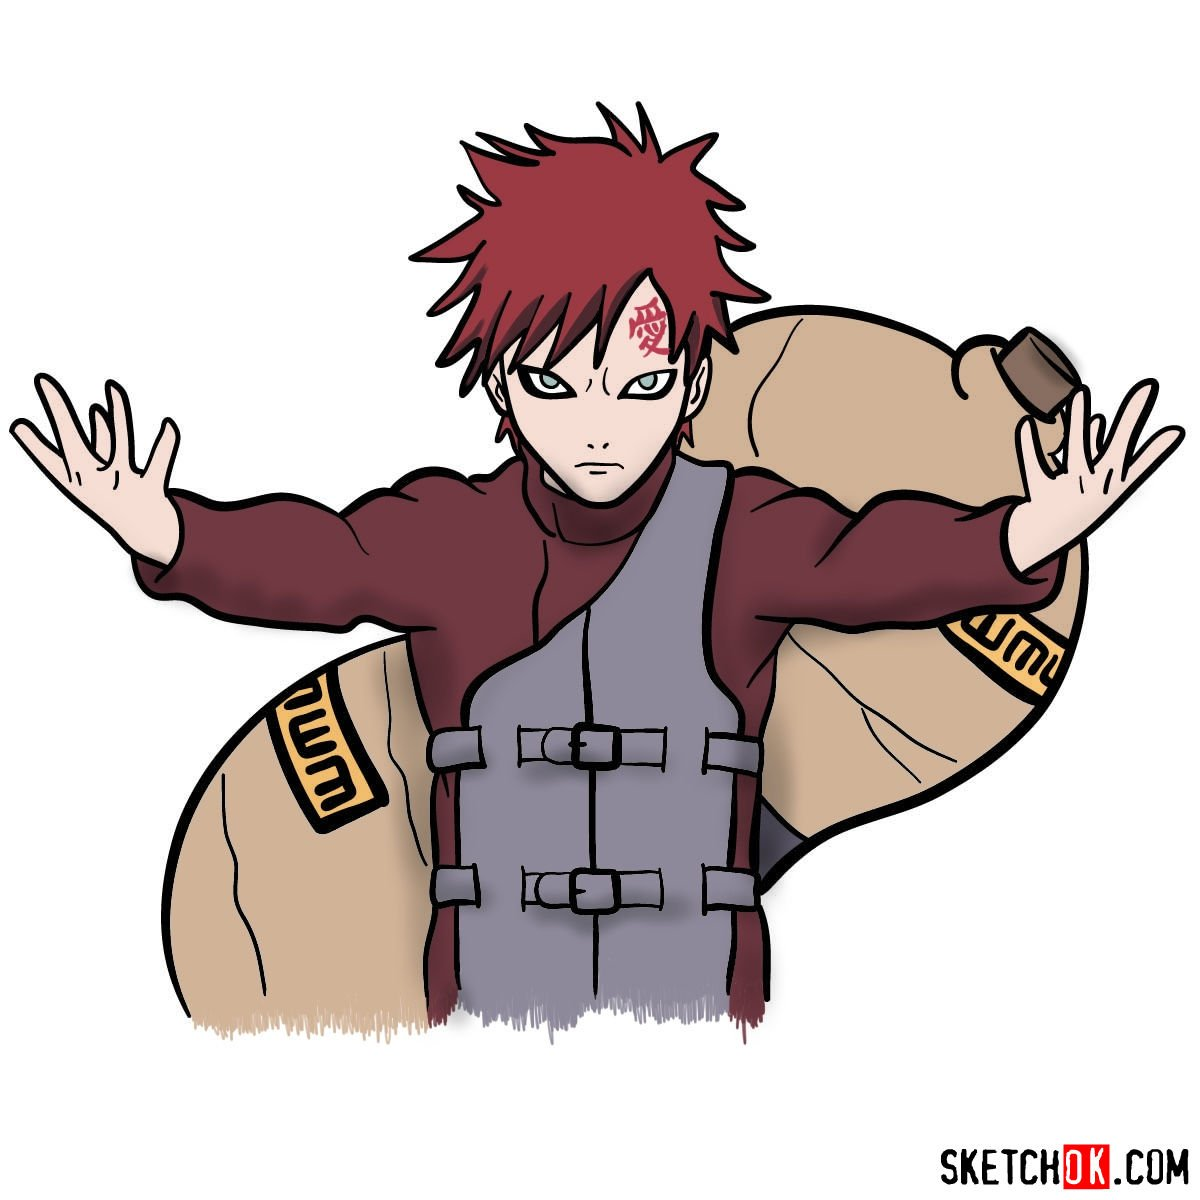 How to draw Gaara from Naruto anime